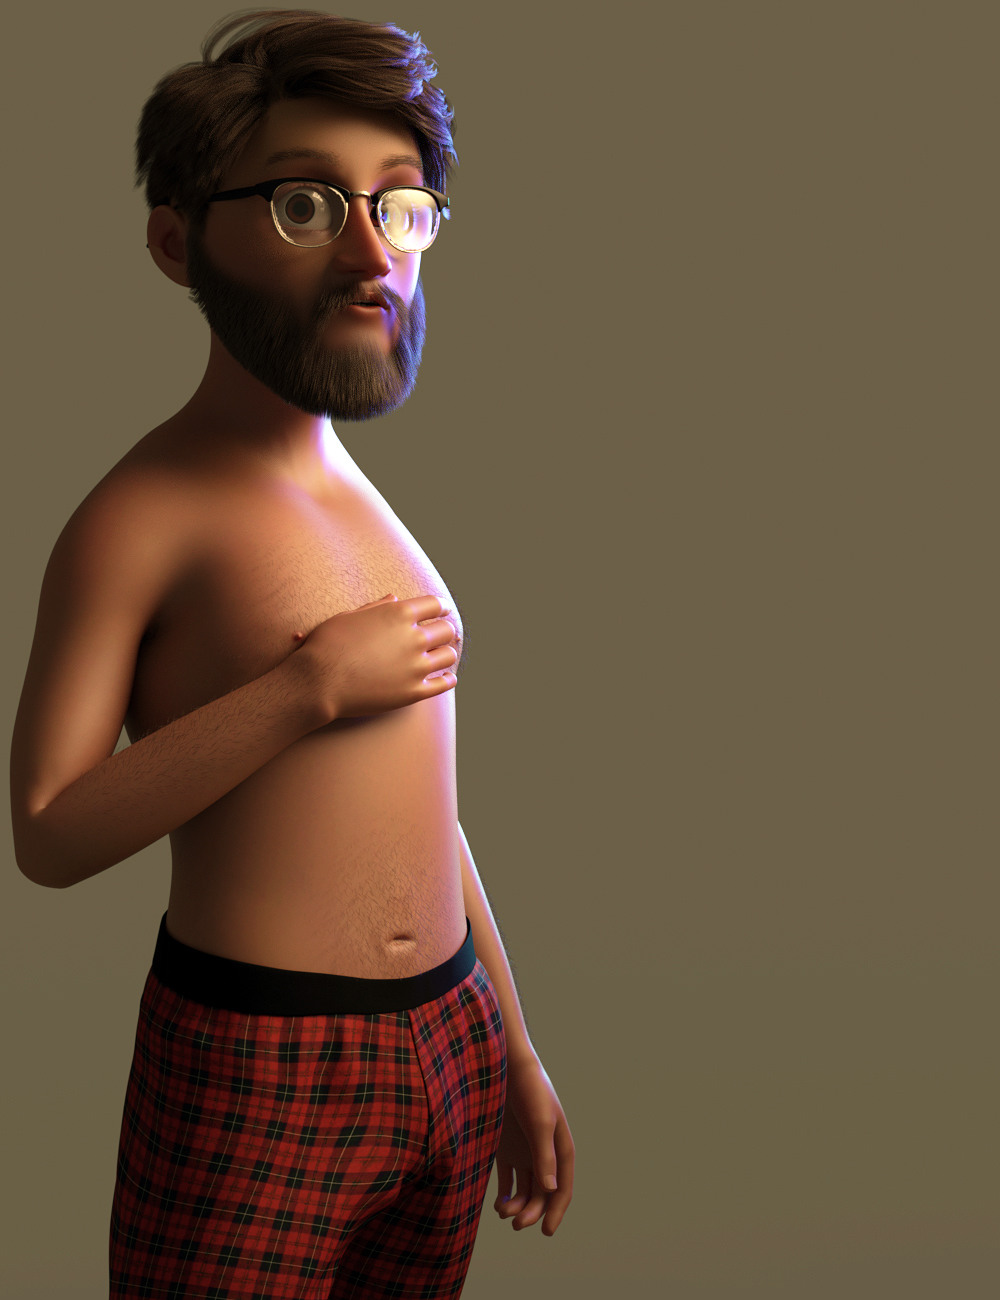 Toon Dad and Fatherly Beard and Accessories for Genesis 8 Male by: JoeQuick, 3D Models by Daz 3D